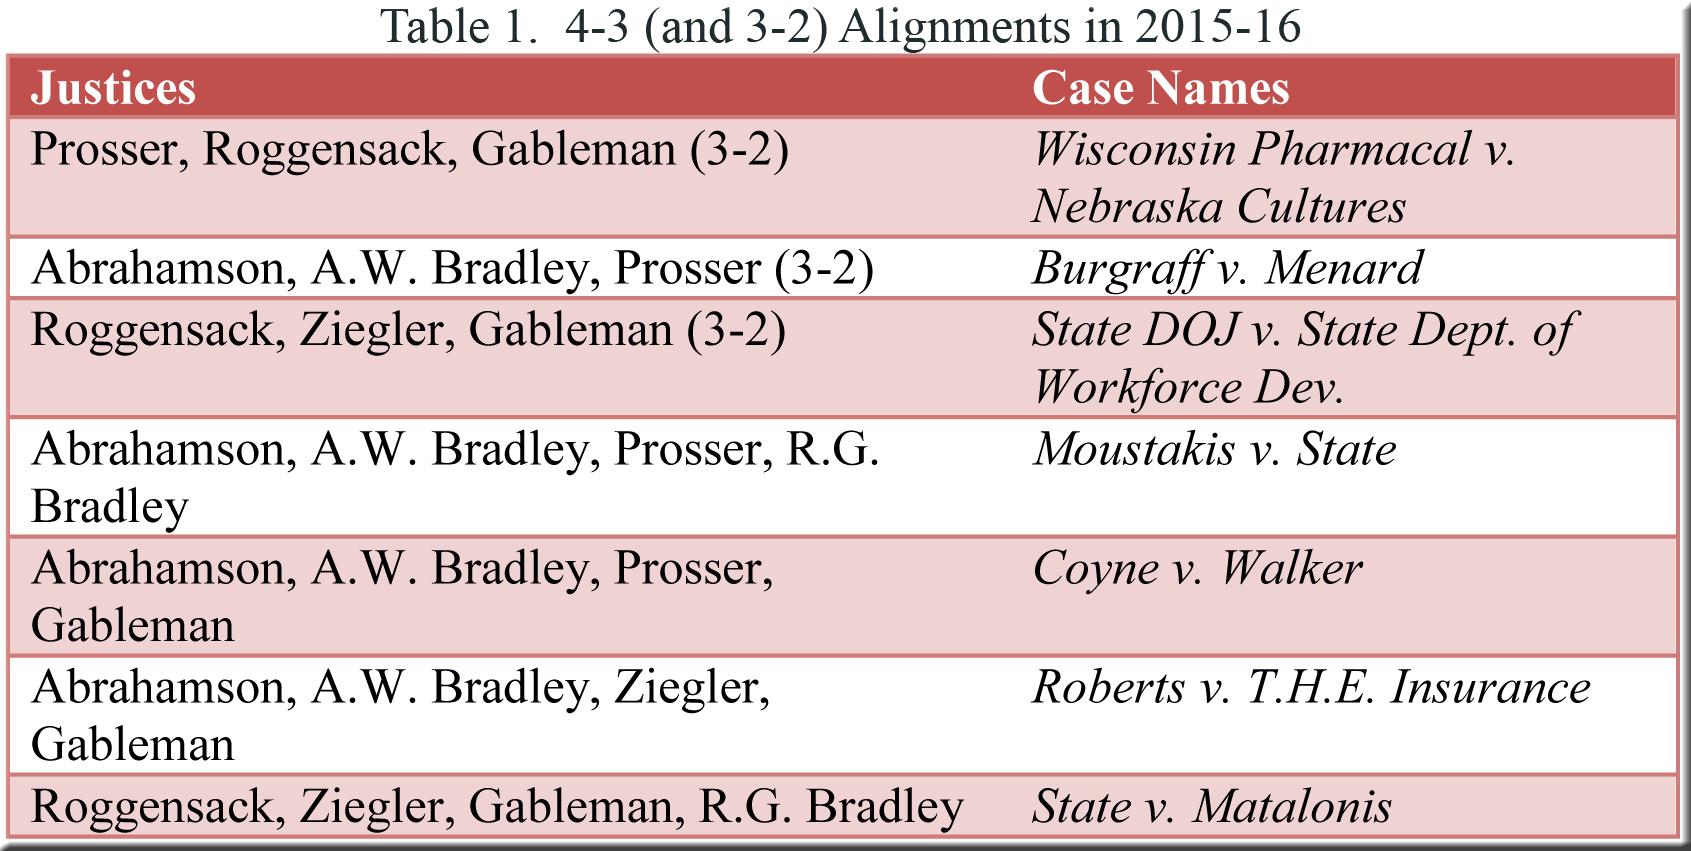 Table 1--4-3 alignments in 2015-16